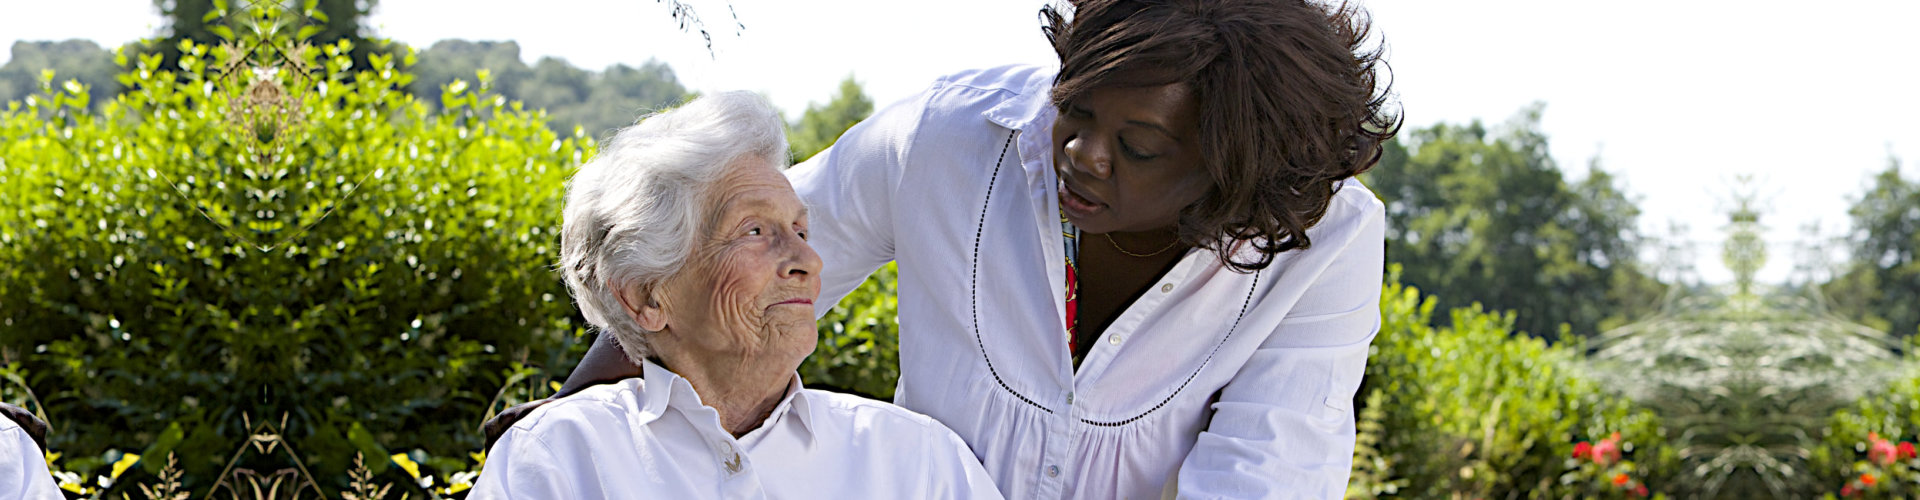 caregiver accompanying her senior patient